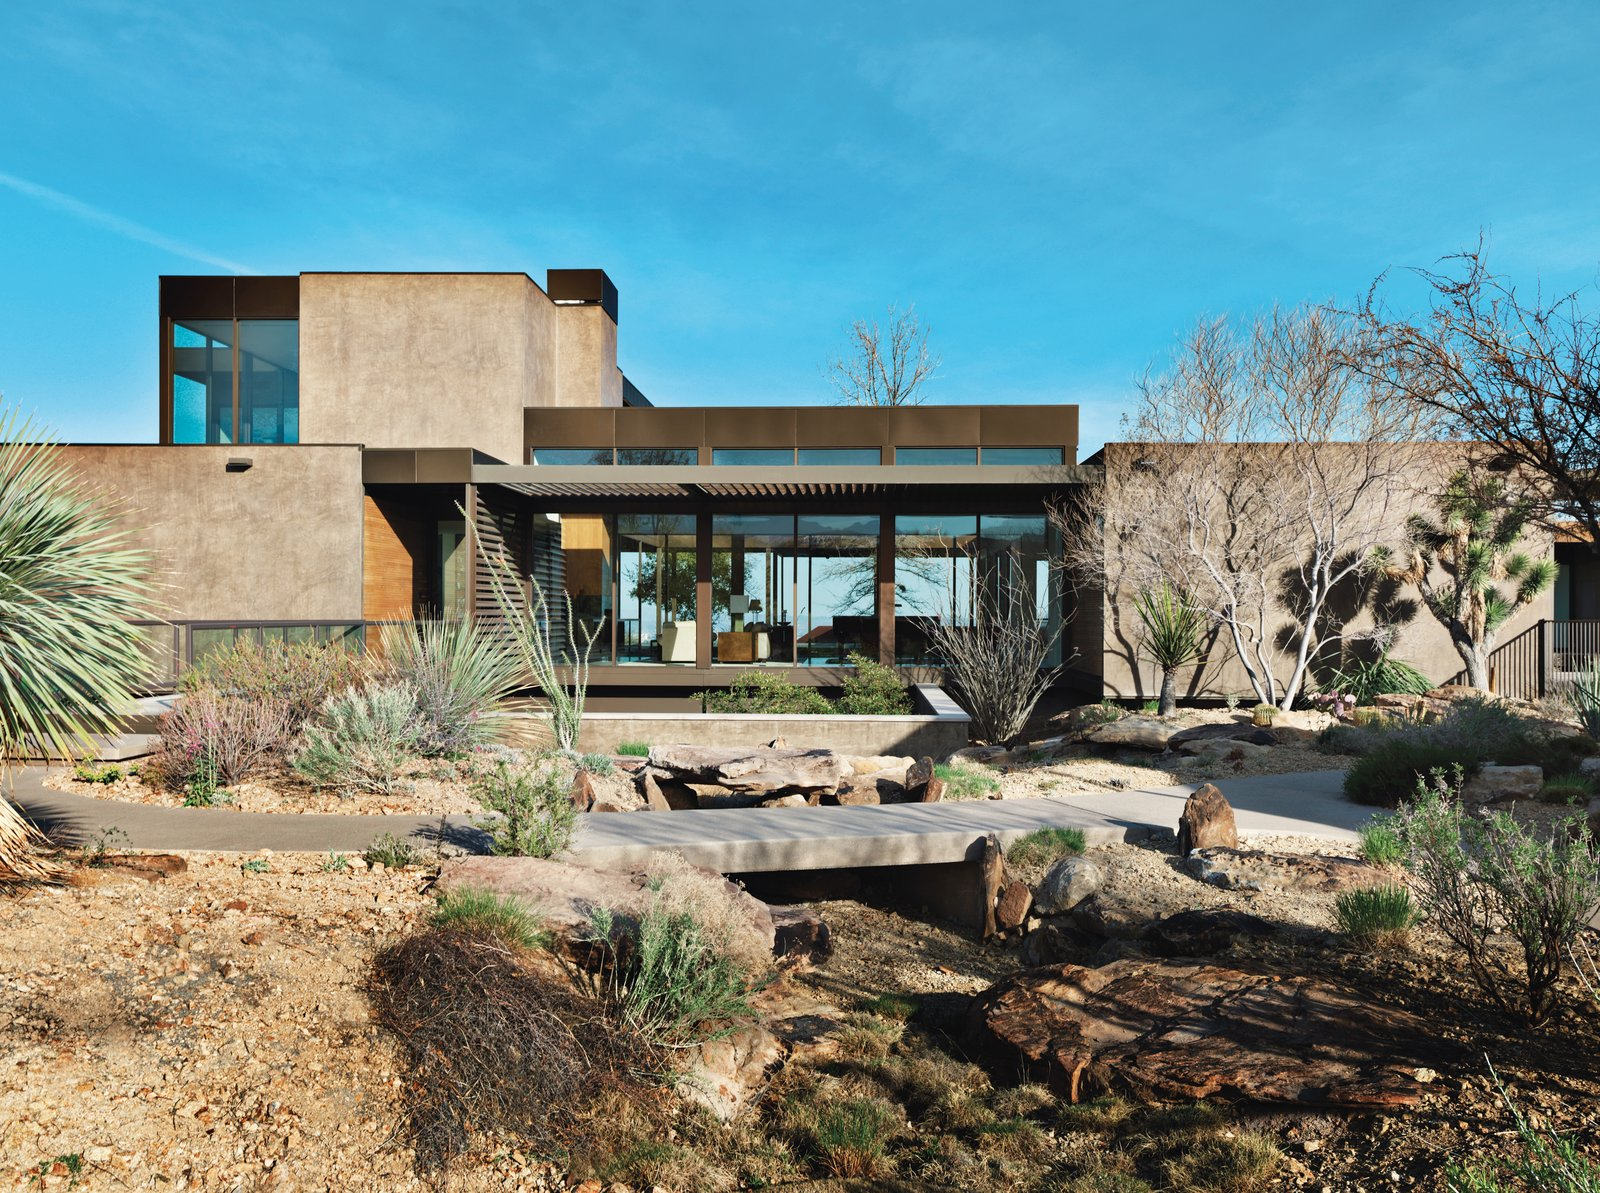 Sage Design Studios transformed the developer-flattened landscape into a picturesque desert setting with naturalistic undulations, meandering trails,and drought-tolerant shrubs. Tagged: Outdoor, Trees, and Desert. A Desert Prefab Hits the Jackpot in Sin City - Photo 5 of 6